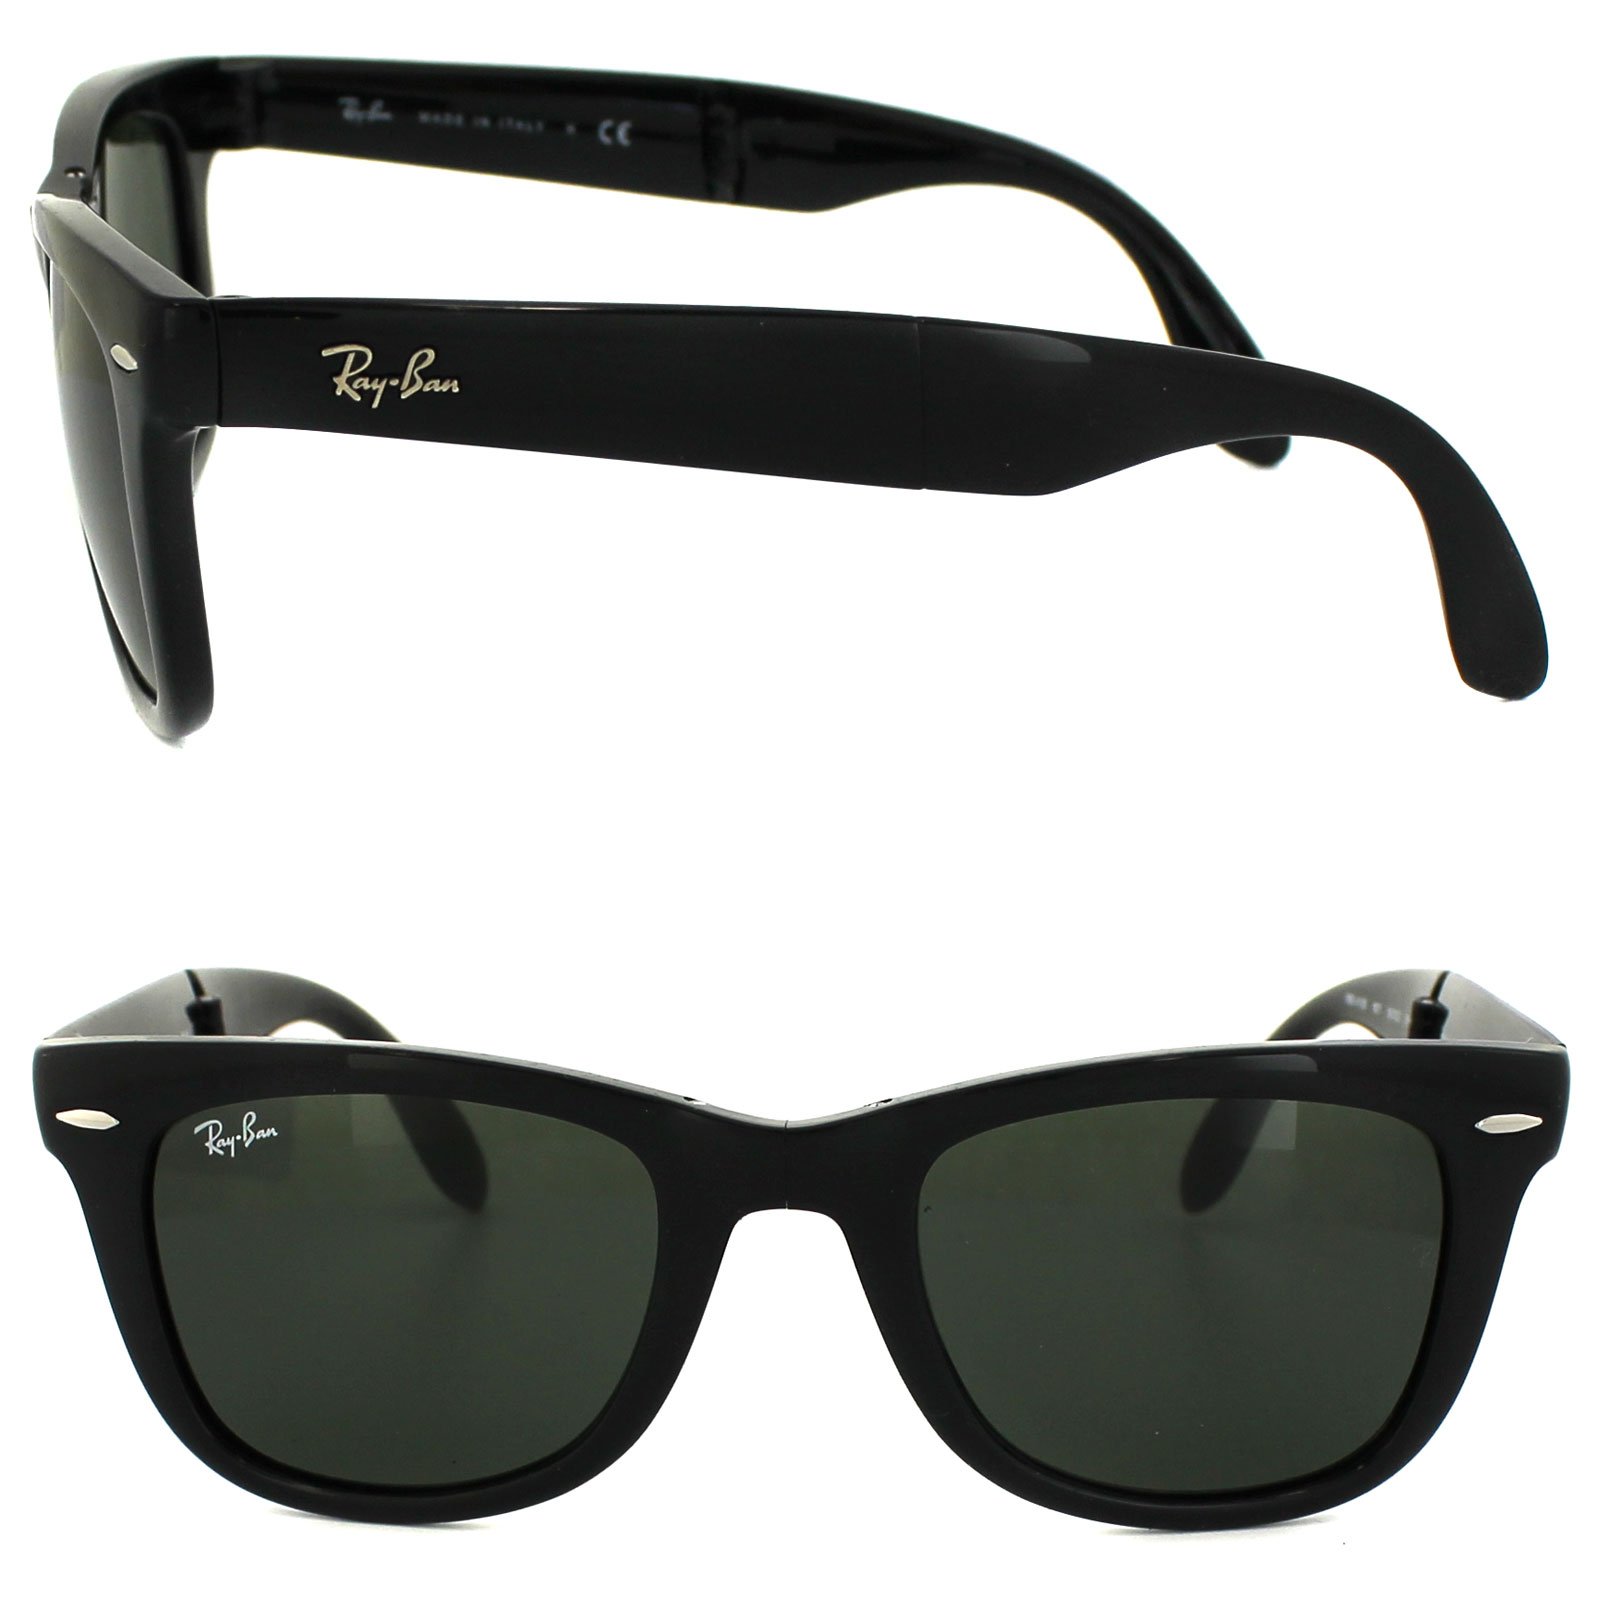 cheap wayfarer sunglasses  Cheap Ray-Ban Folding Wayfarer 4105 Sunglasses - Discounted Sunglasses